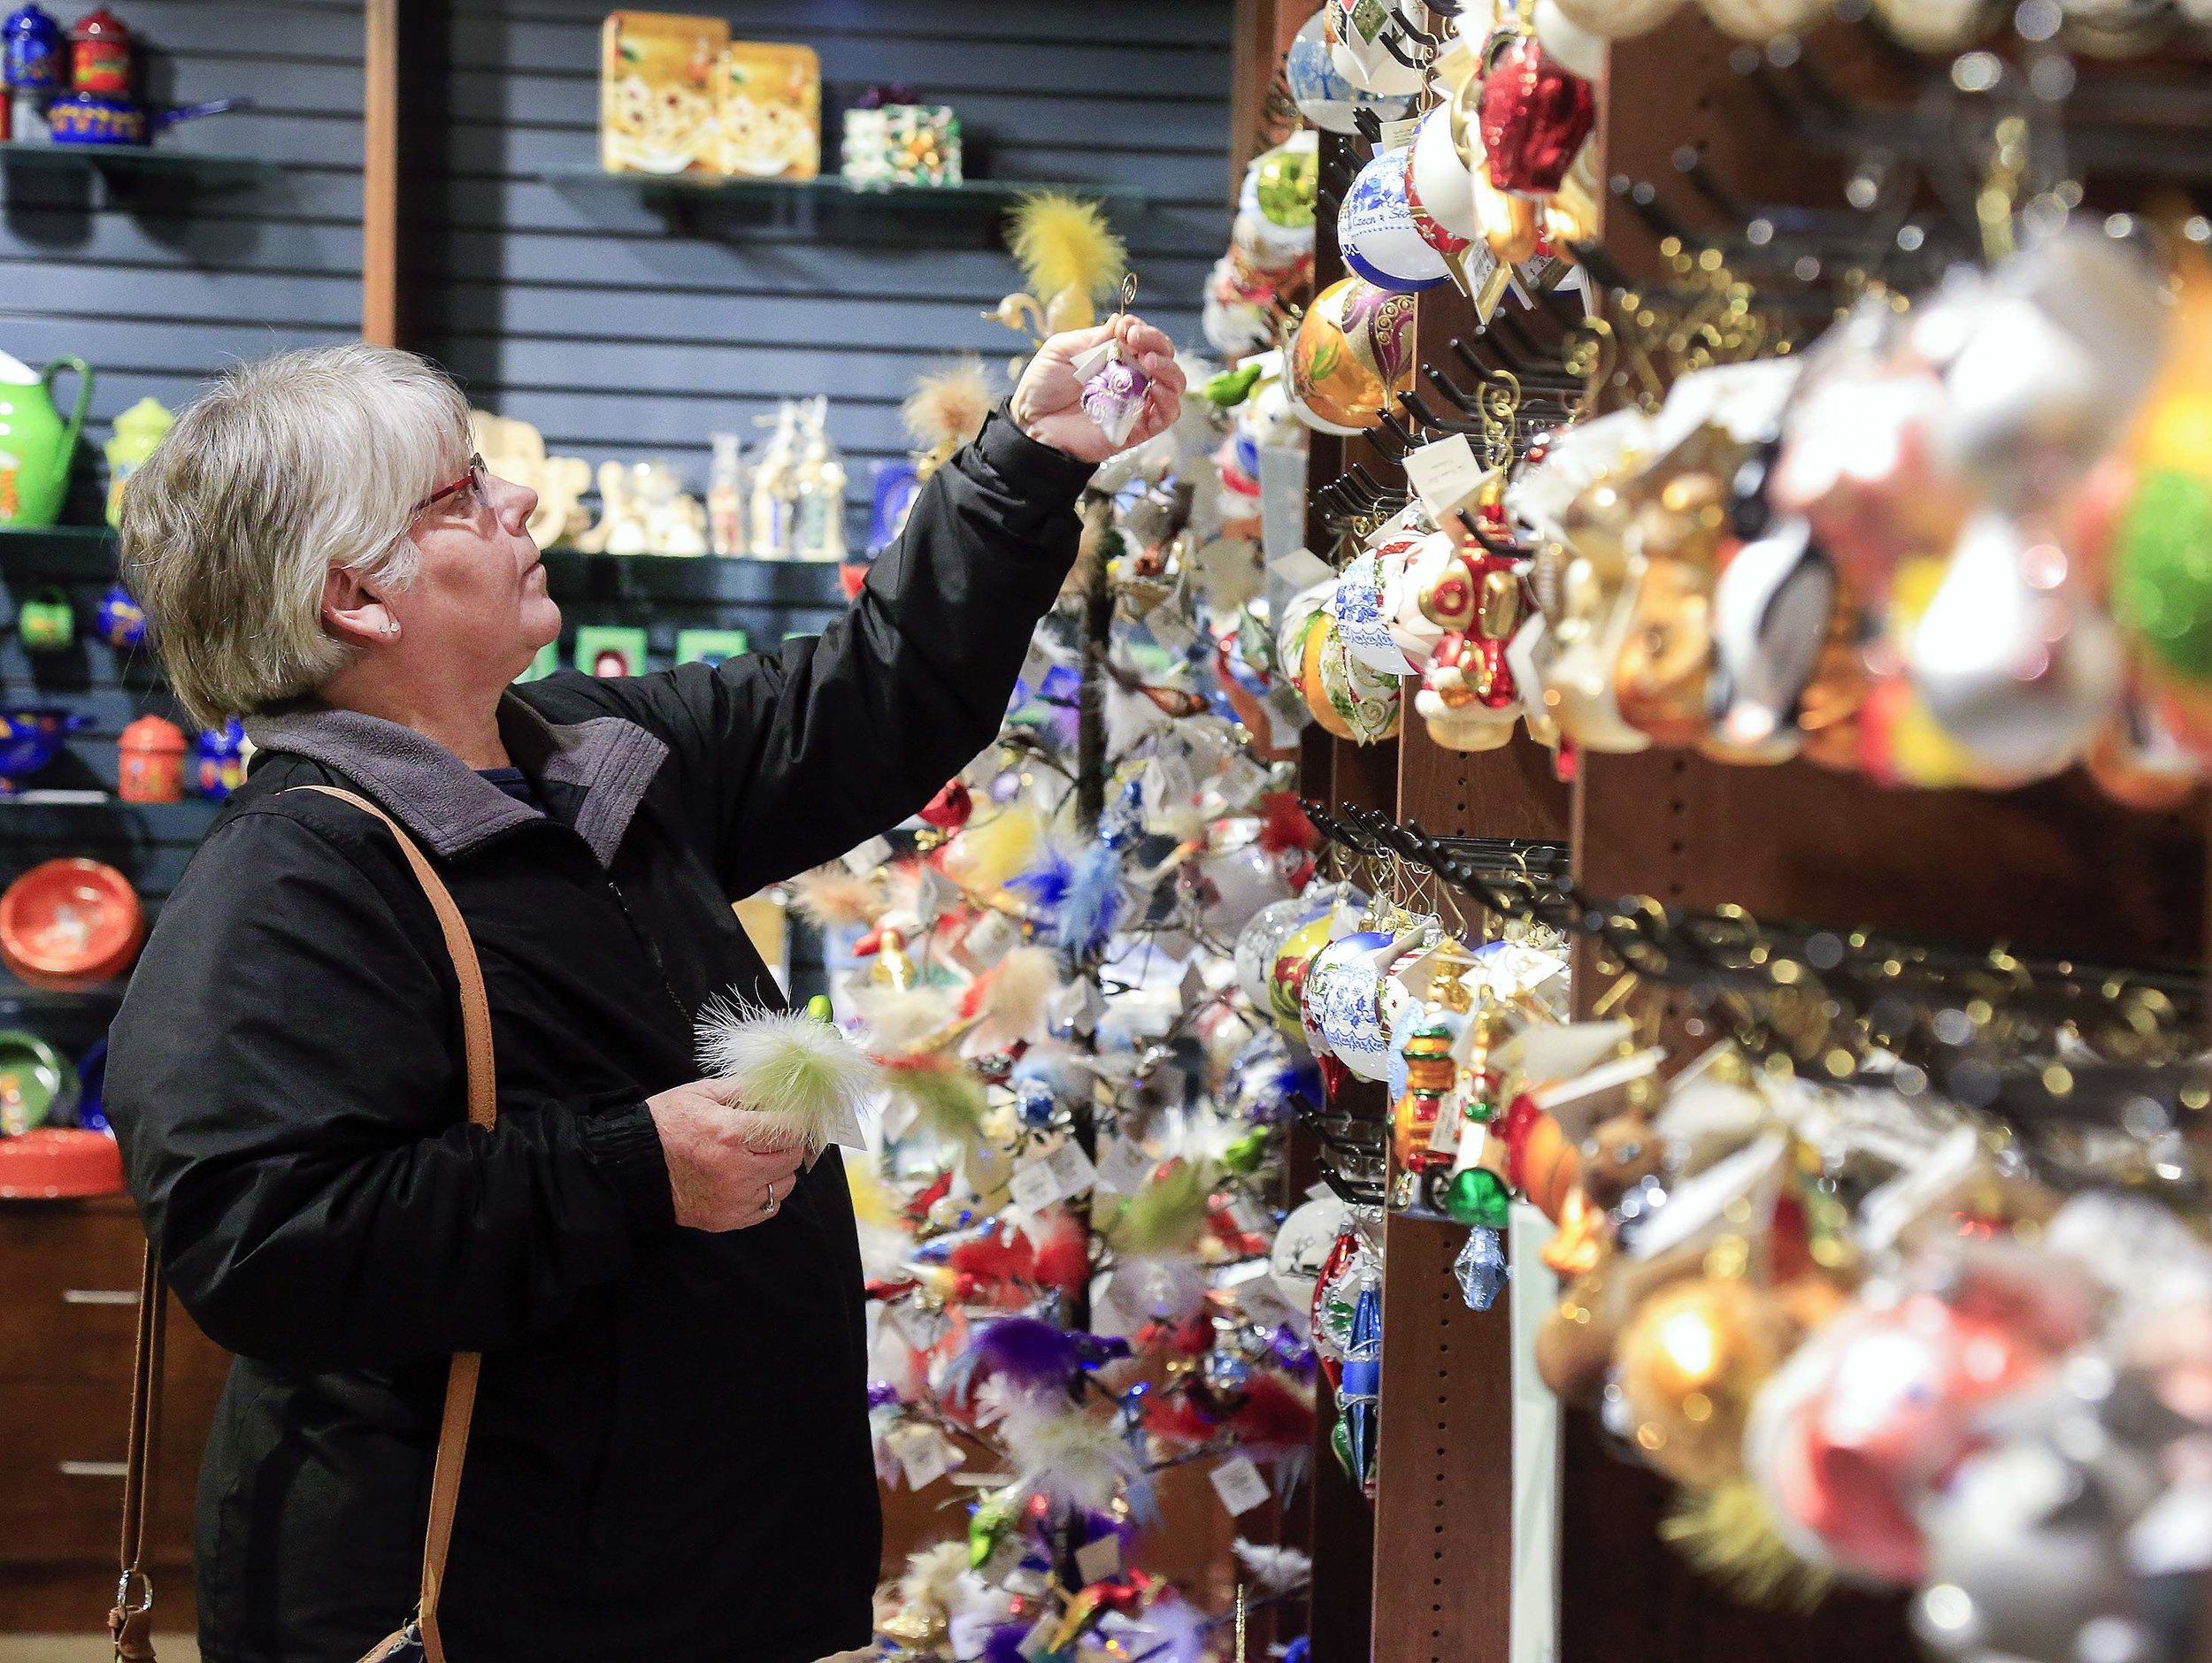 National Czech & Slovak Museum & Library Store has Collectible Czech Christmas Ornaments